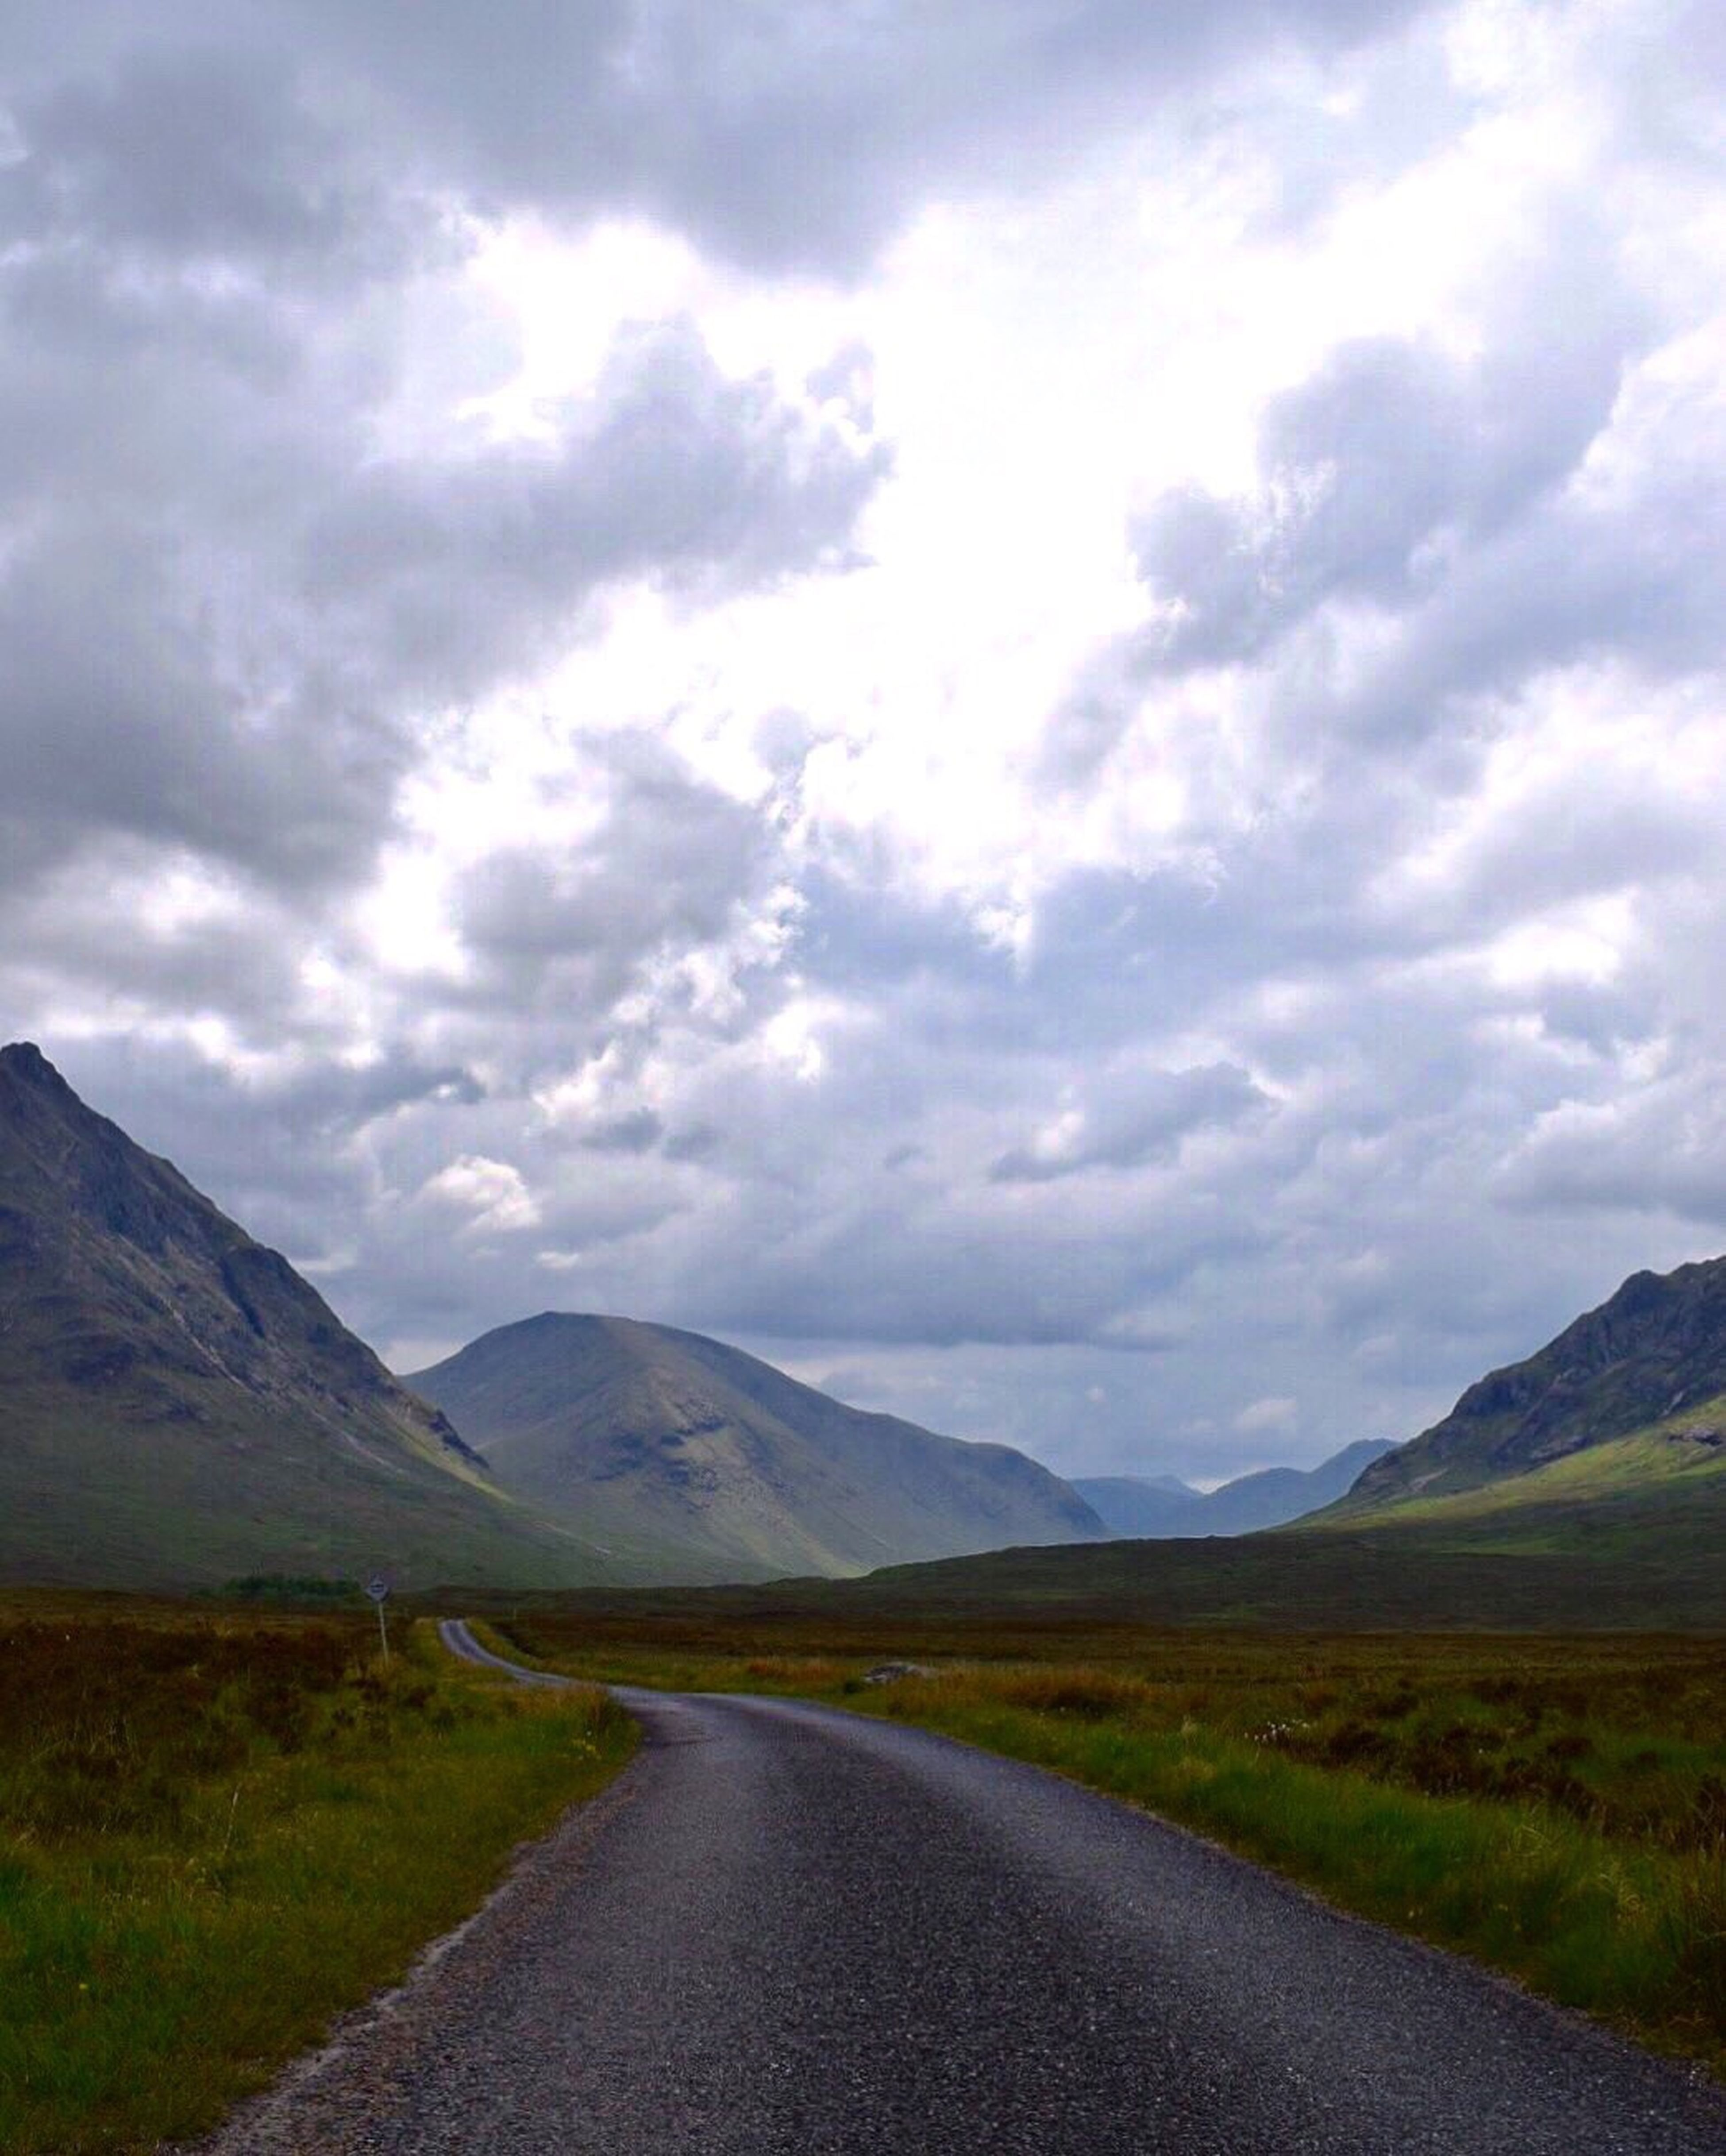 Glenetive scotland Mountain Scenics Sky Landscape Cloud - Sky Road Tranquility Tranquil Scene Mountain Range Beauty In Nature Nature The Way Forward Outdoors Day No People Winding Road